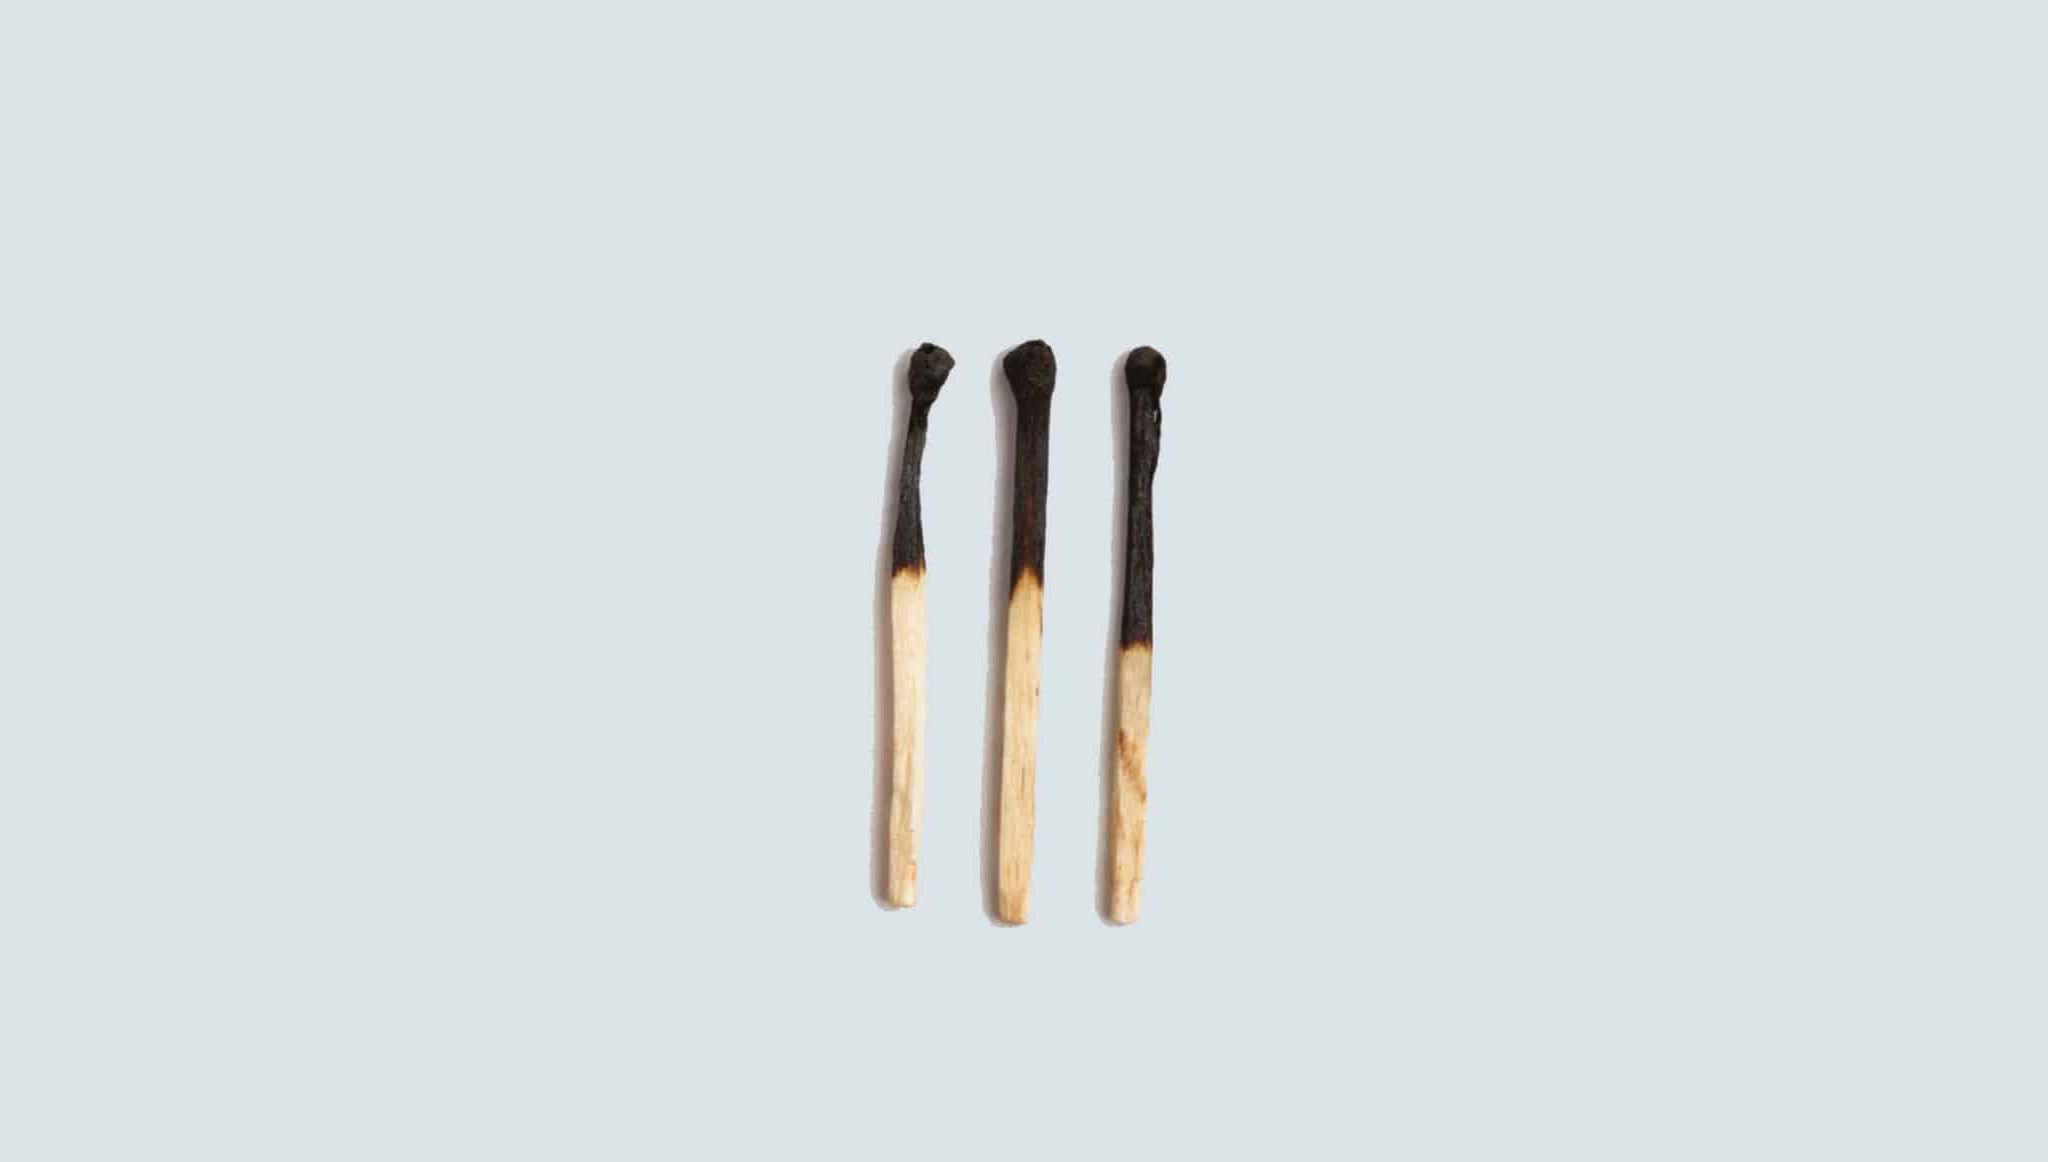 Photo of three matchsticks next to each other